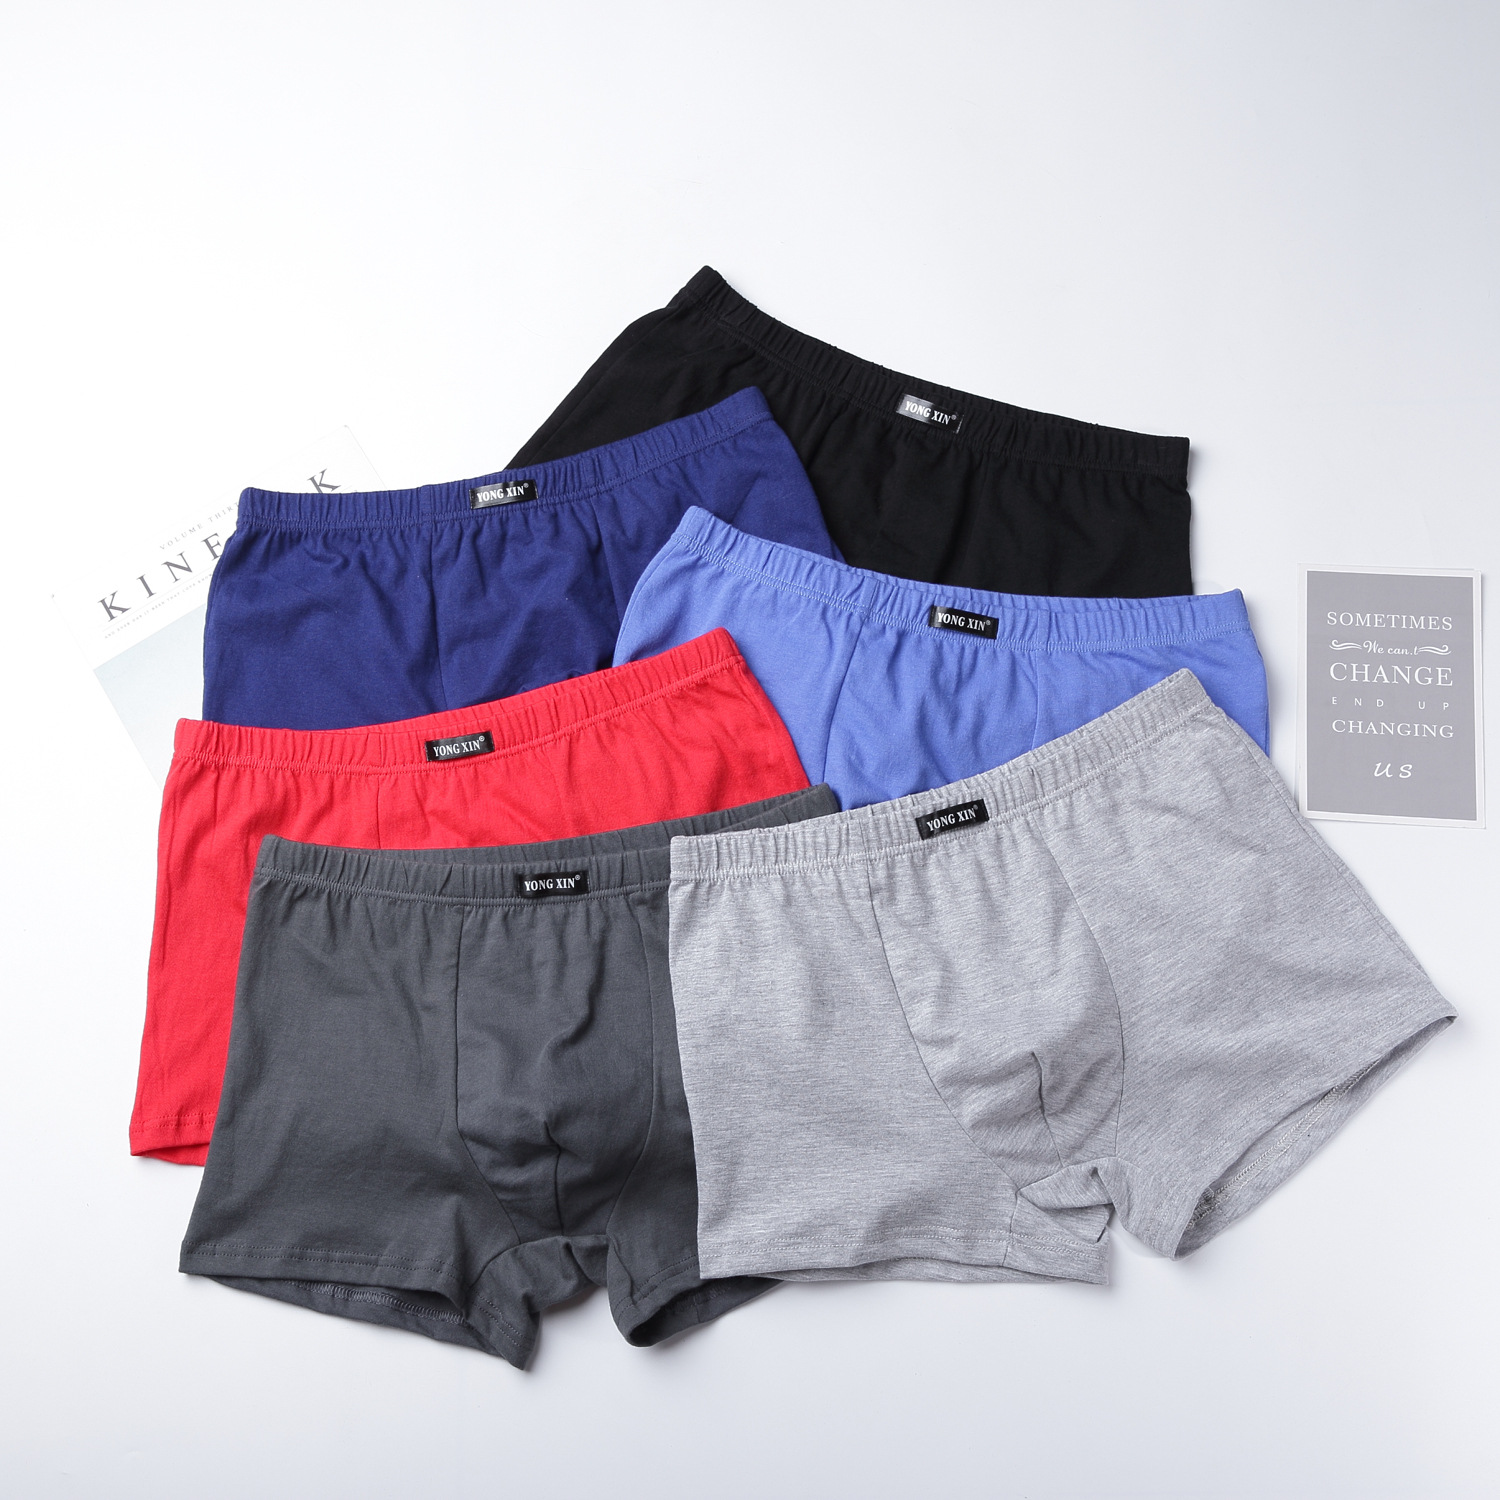 Hot Underpants 100% Cotton Quality Men's Male Underwear Classic Solid Fashion Pouch Trunks Short Boxers 4PCS Free Shipping